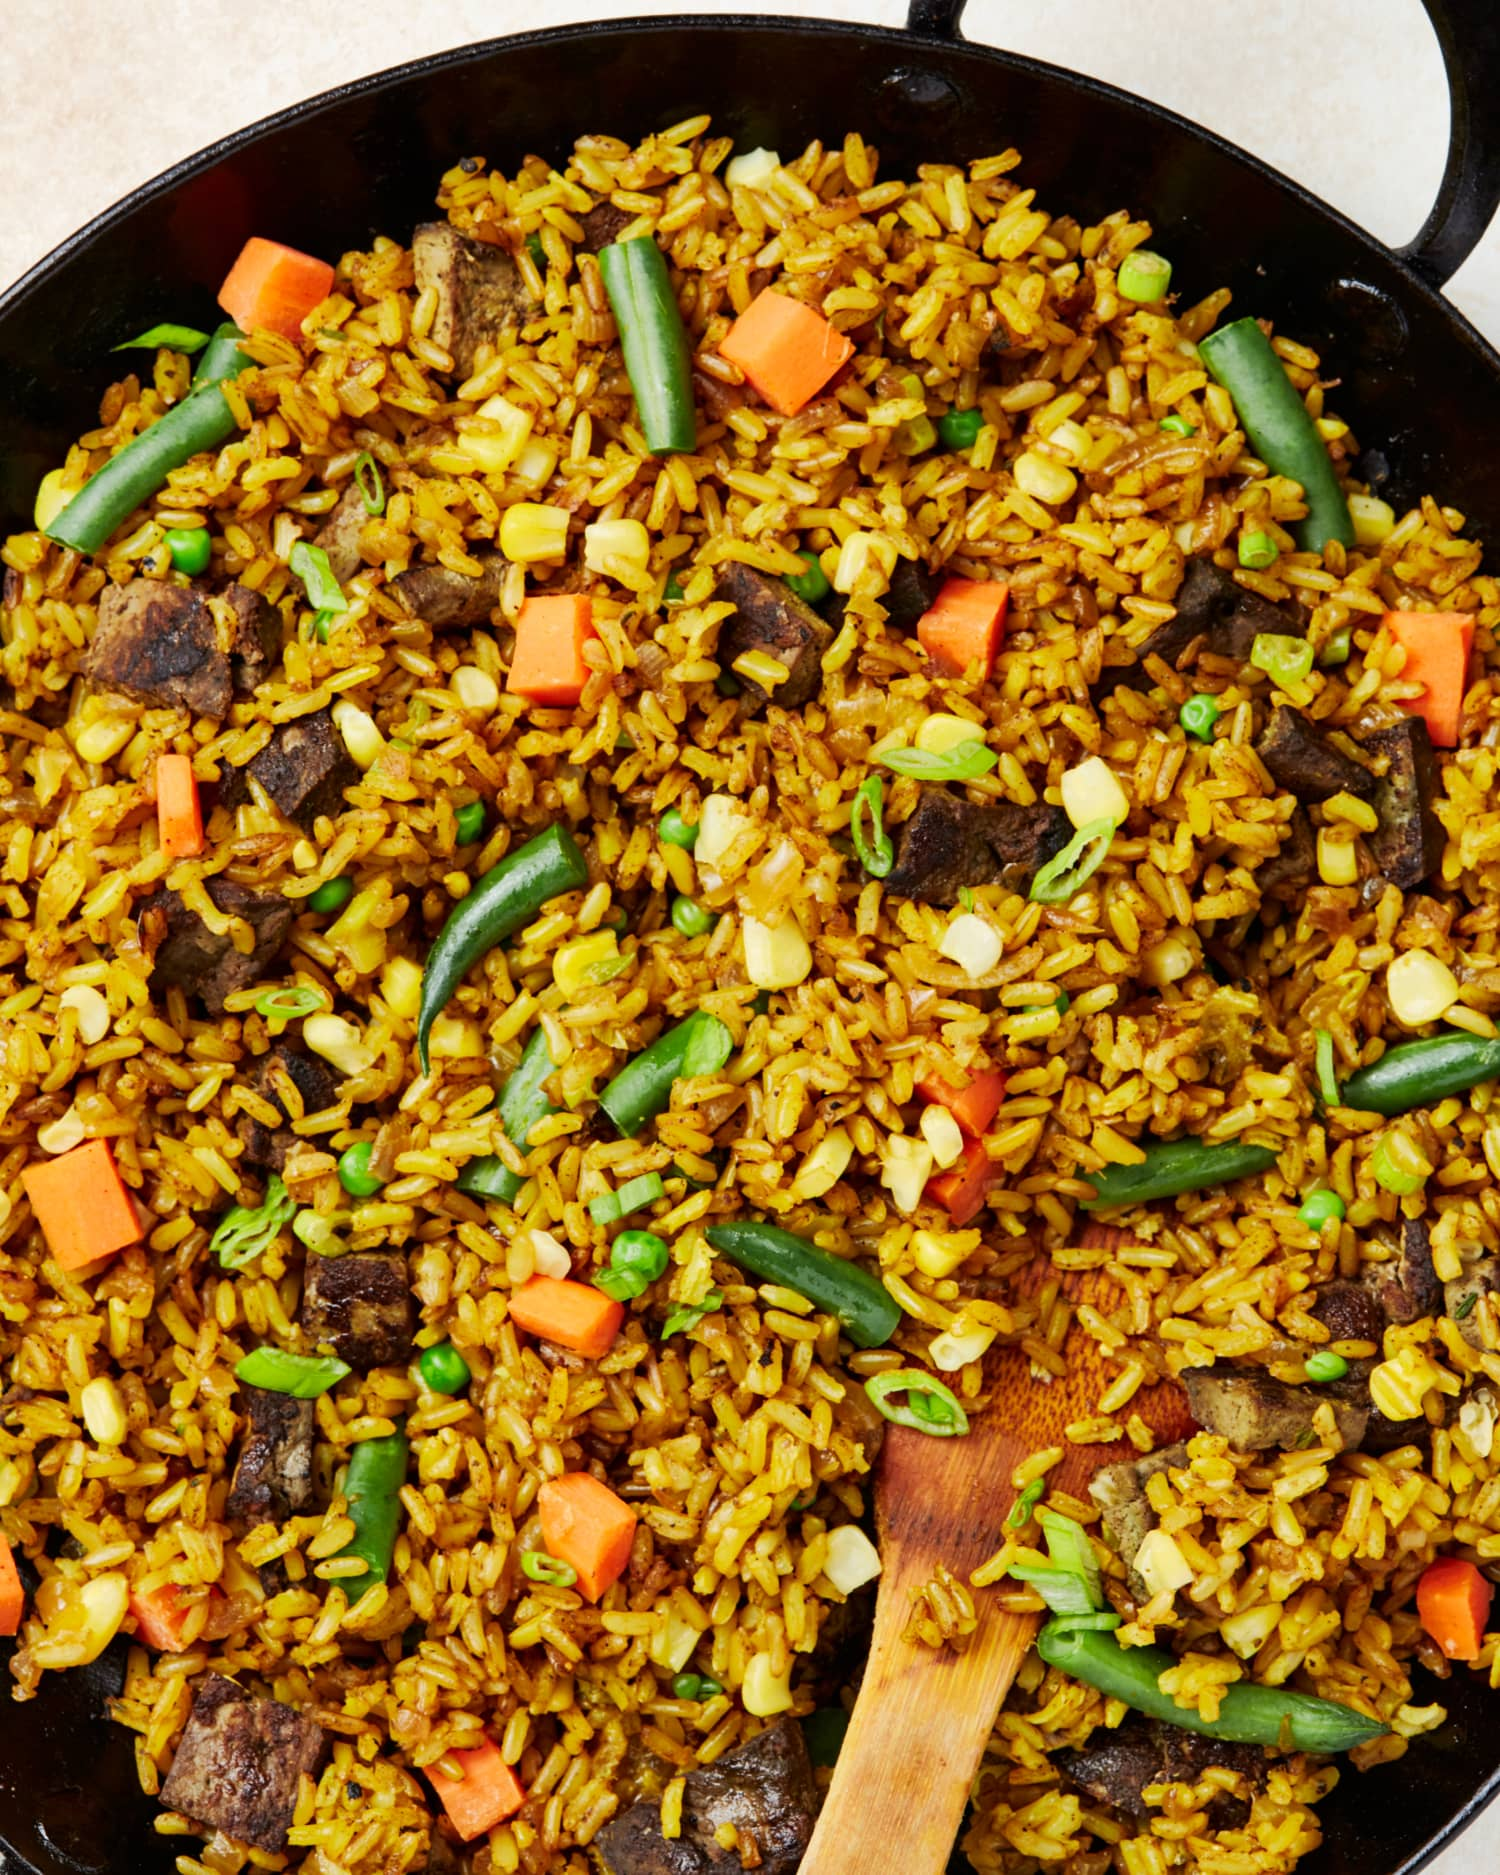 Why Nigerian Fried Rice Will Always Have a Place on My Thanksgiving Table